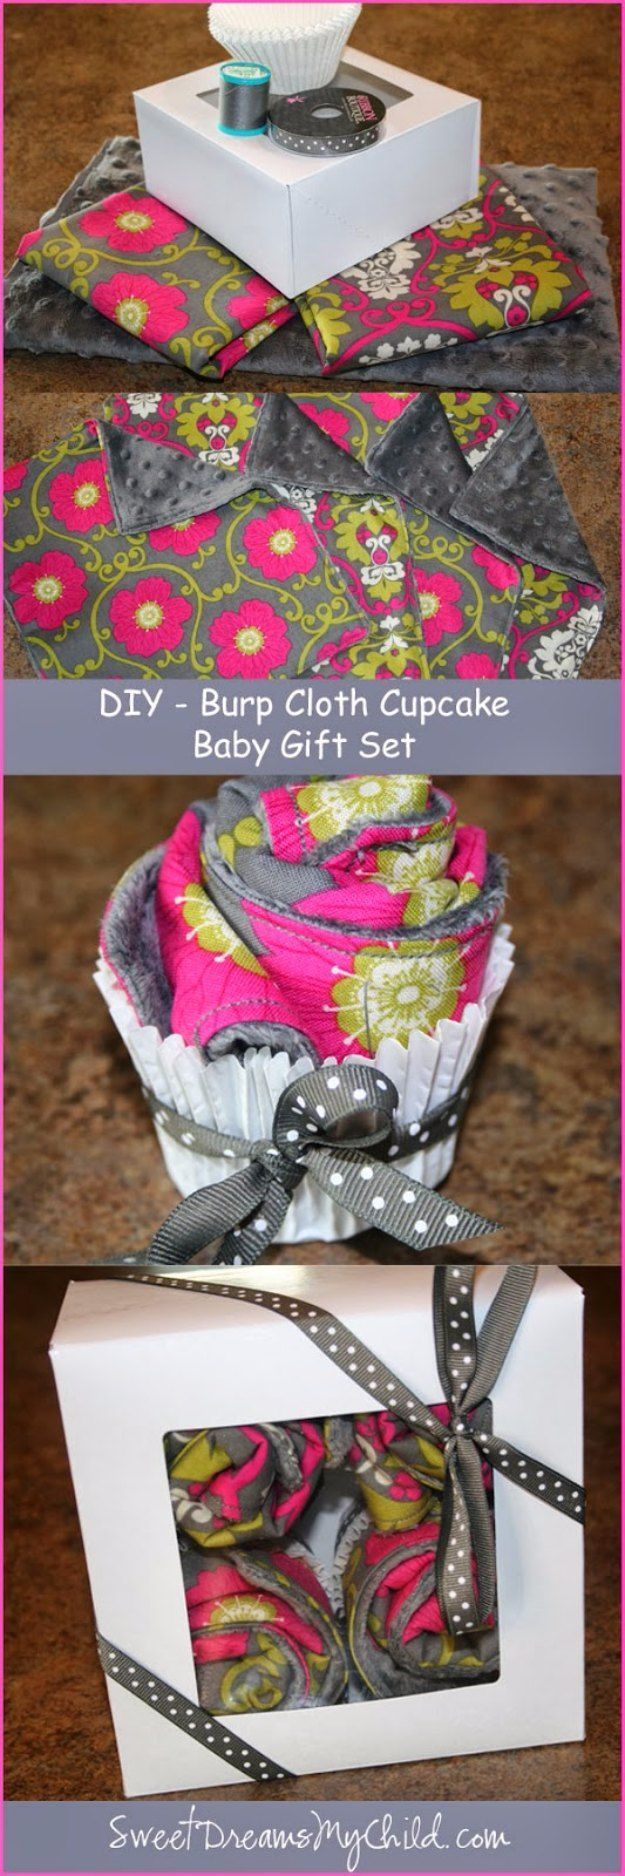 DIY Baby Gifts - Baby Burp Cloth Cupcake Tutorial - Homemade Baby Shower Presents and Creative, Cheap Gift Ideas for Boys and Girls - Unique Gifts for the Mom and Dad to Be - Blankets, Baskets, Burp Cloths and Easy No Sew Projects http://diyjoy.com/diy-baby-shower-gifts